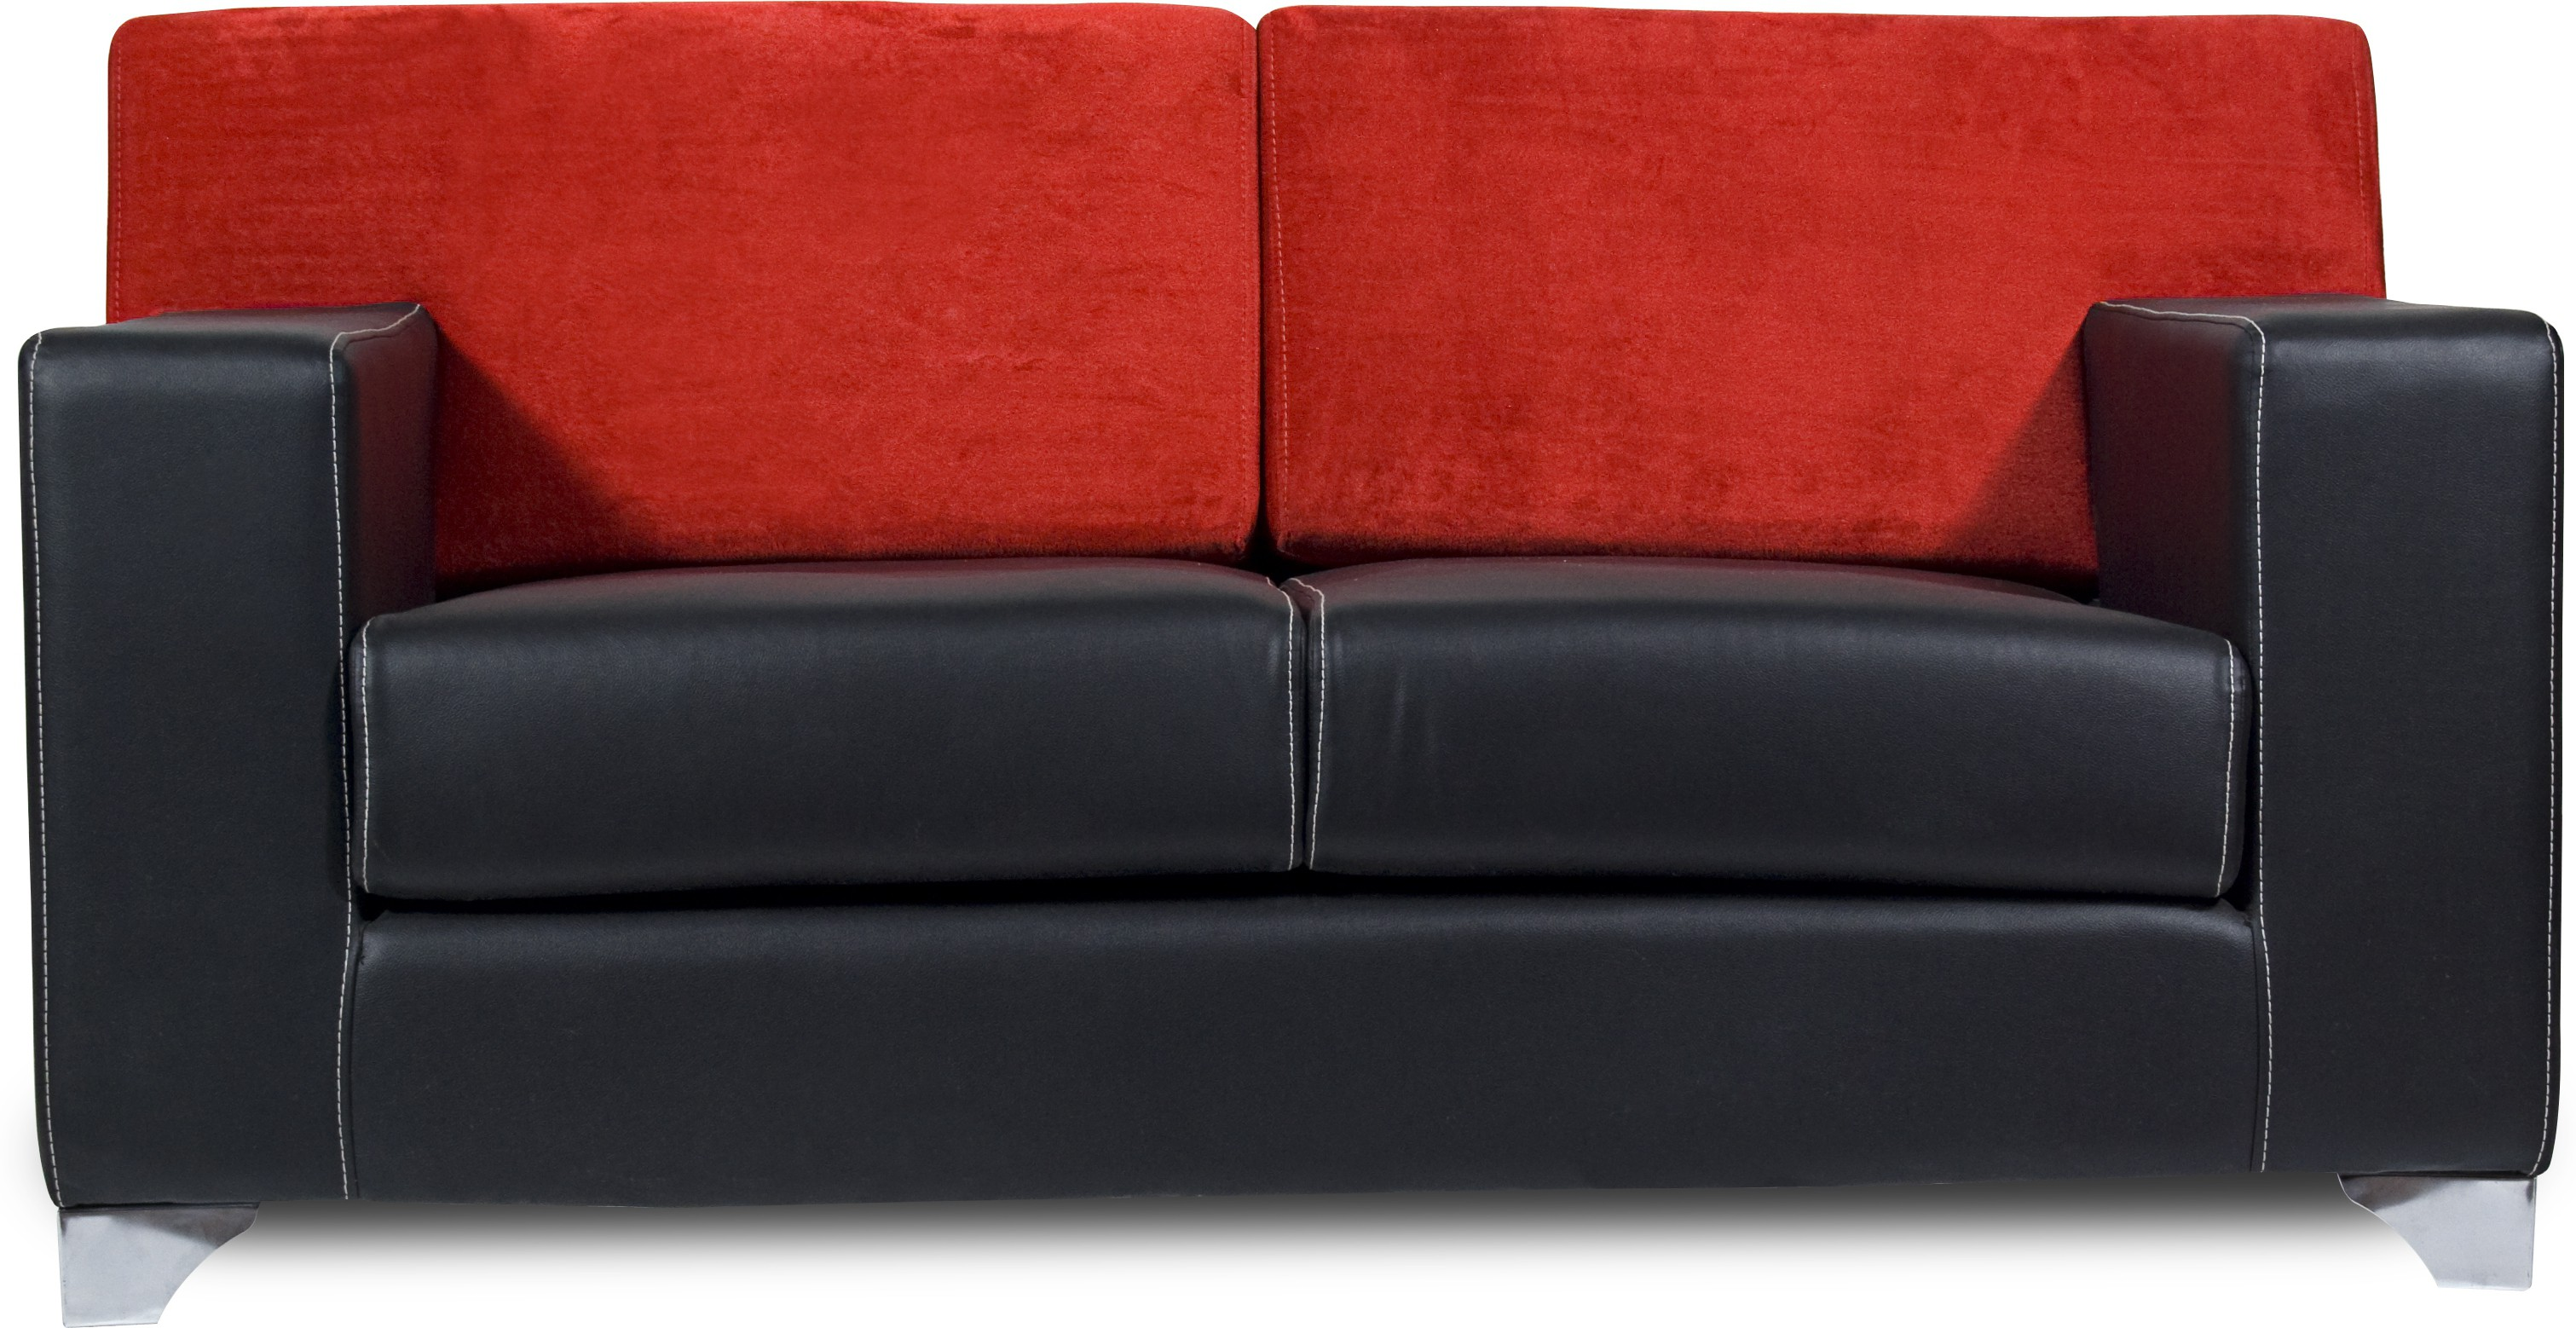 View Homecity Leatherette 2 Seater Sofa(Finish Color - Black) Furniture (Home City)